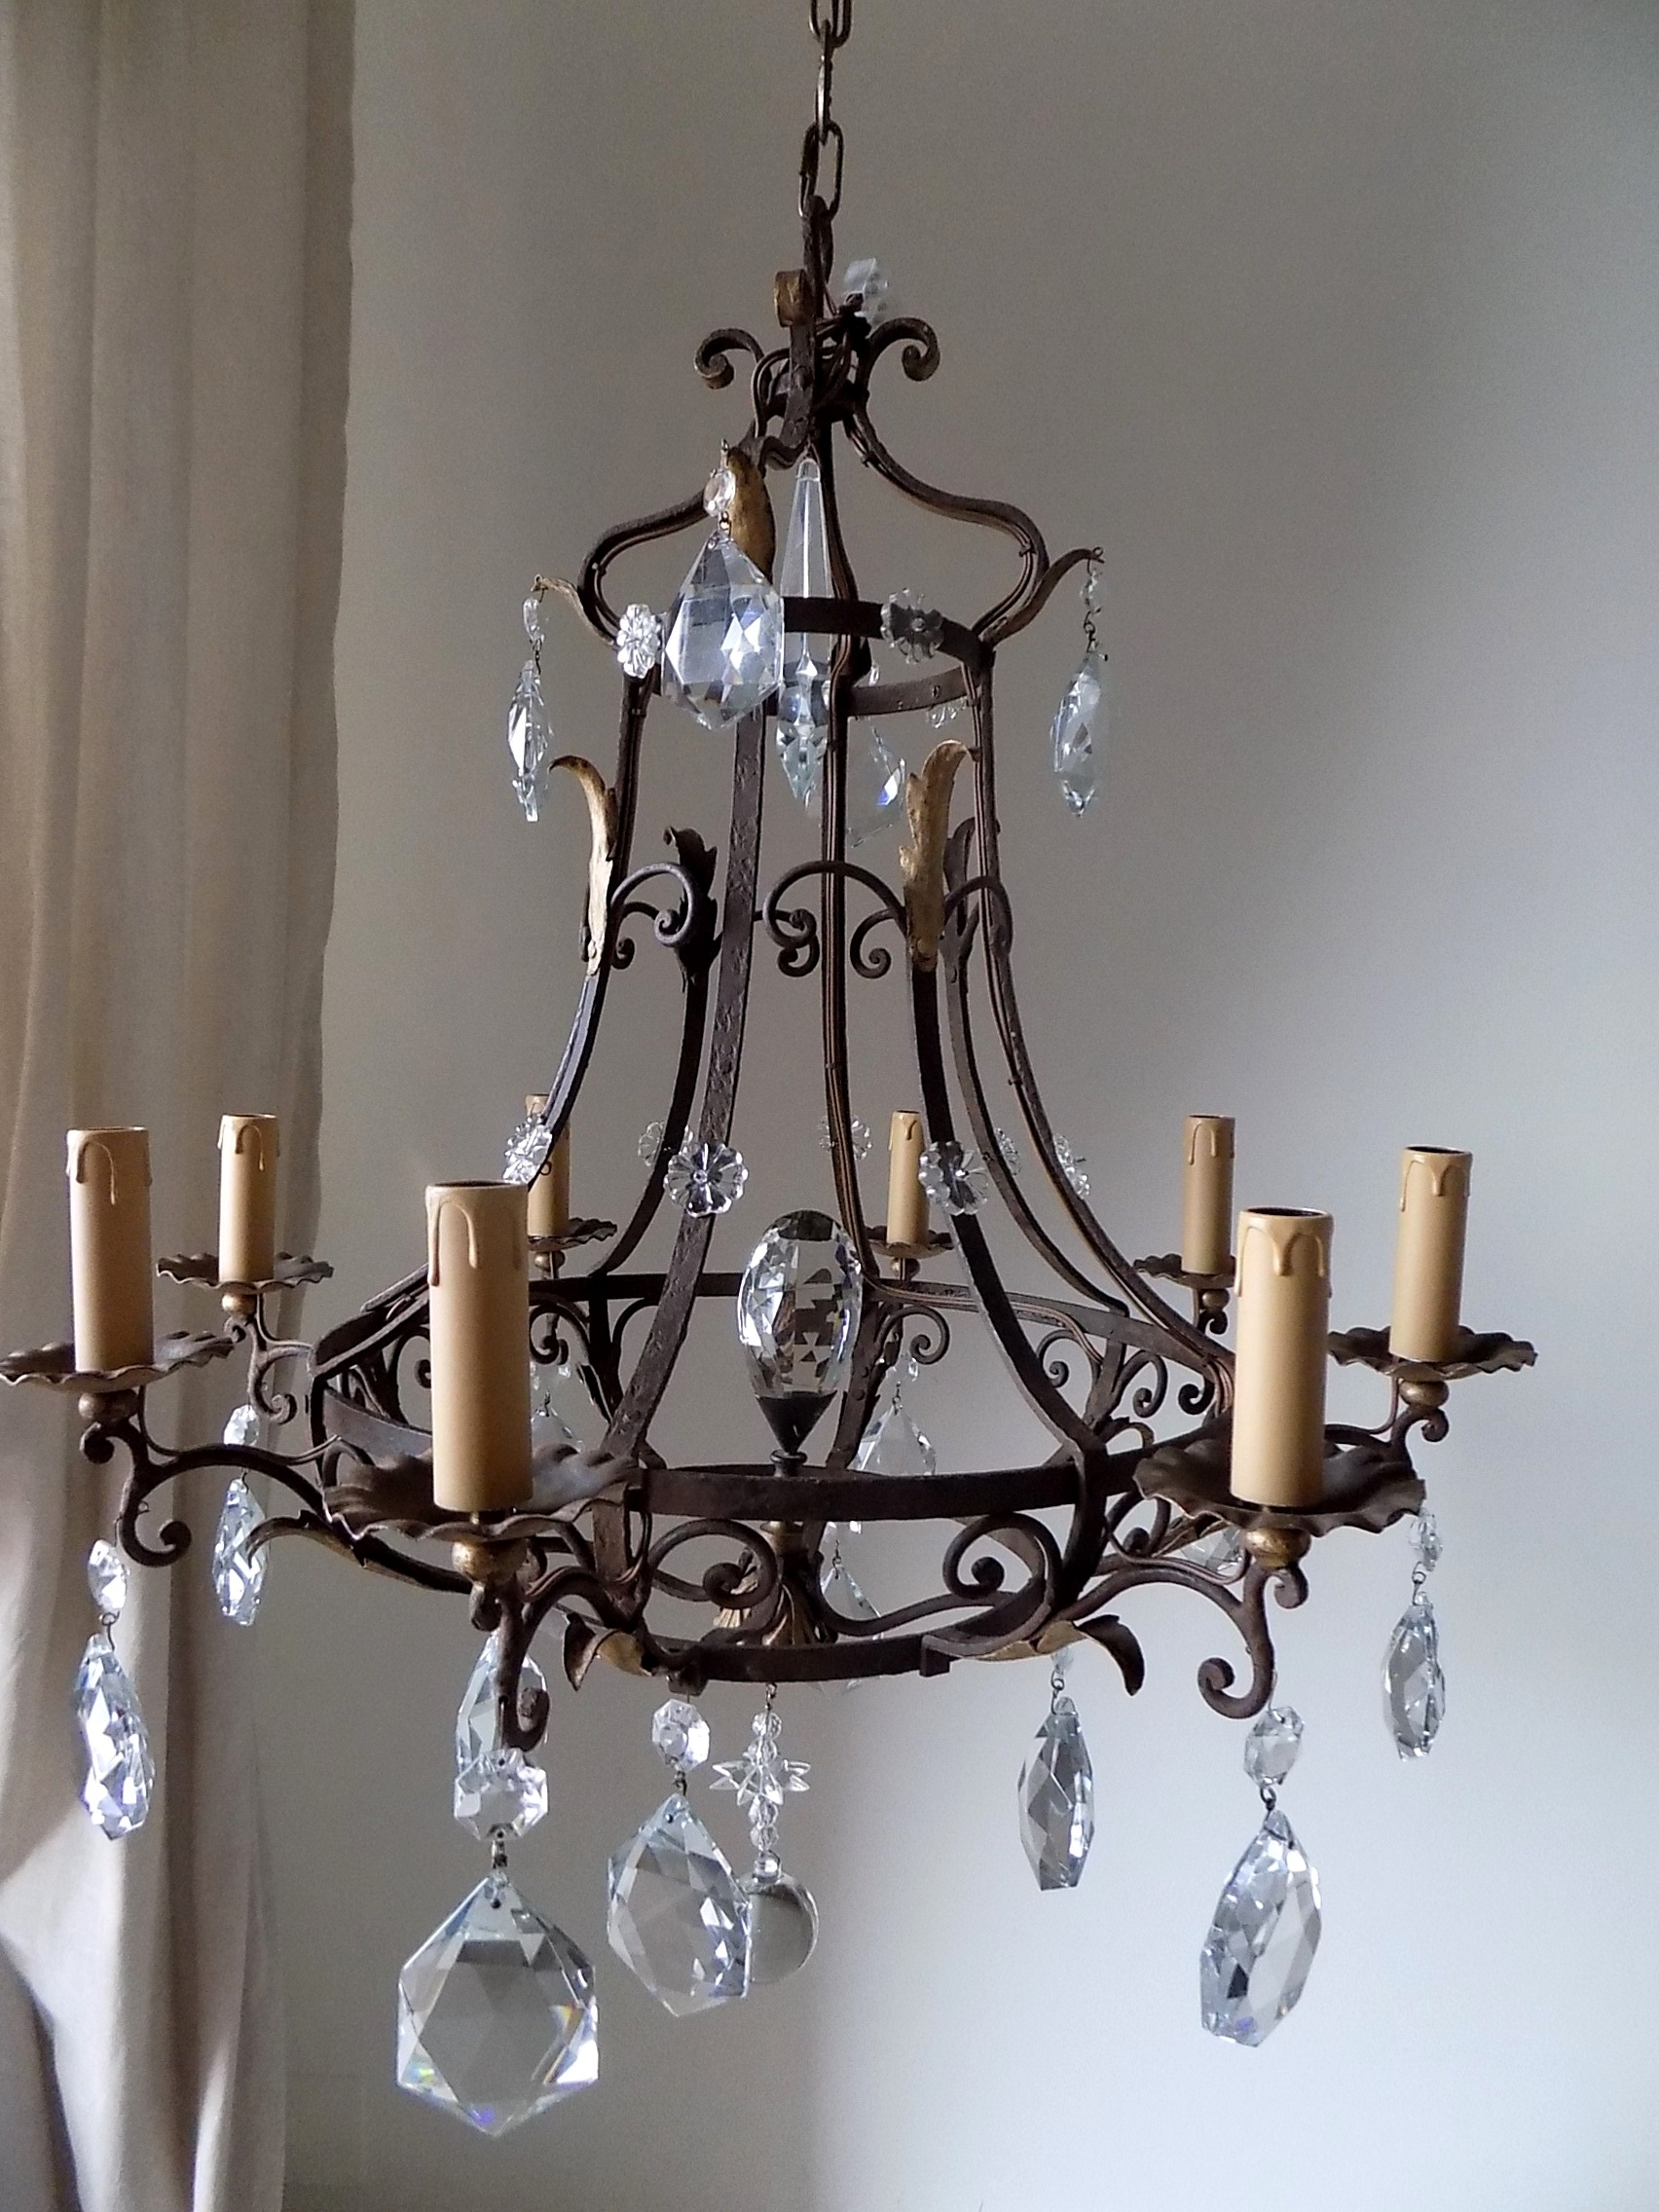 2019 Antique French Massive Hand Forged Wrought Iron Chandelier – Lorella Dia In Wrought Iron Chandeliers (View 3 of 20)